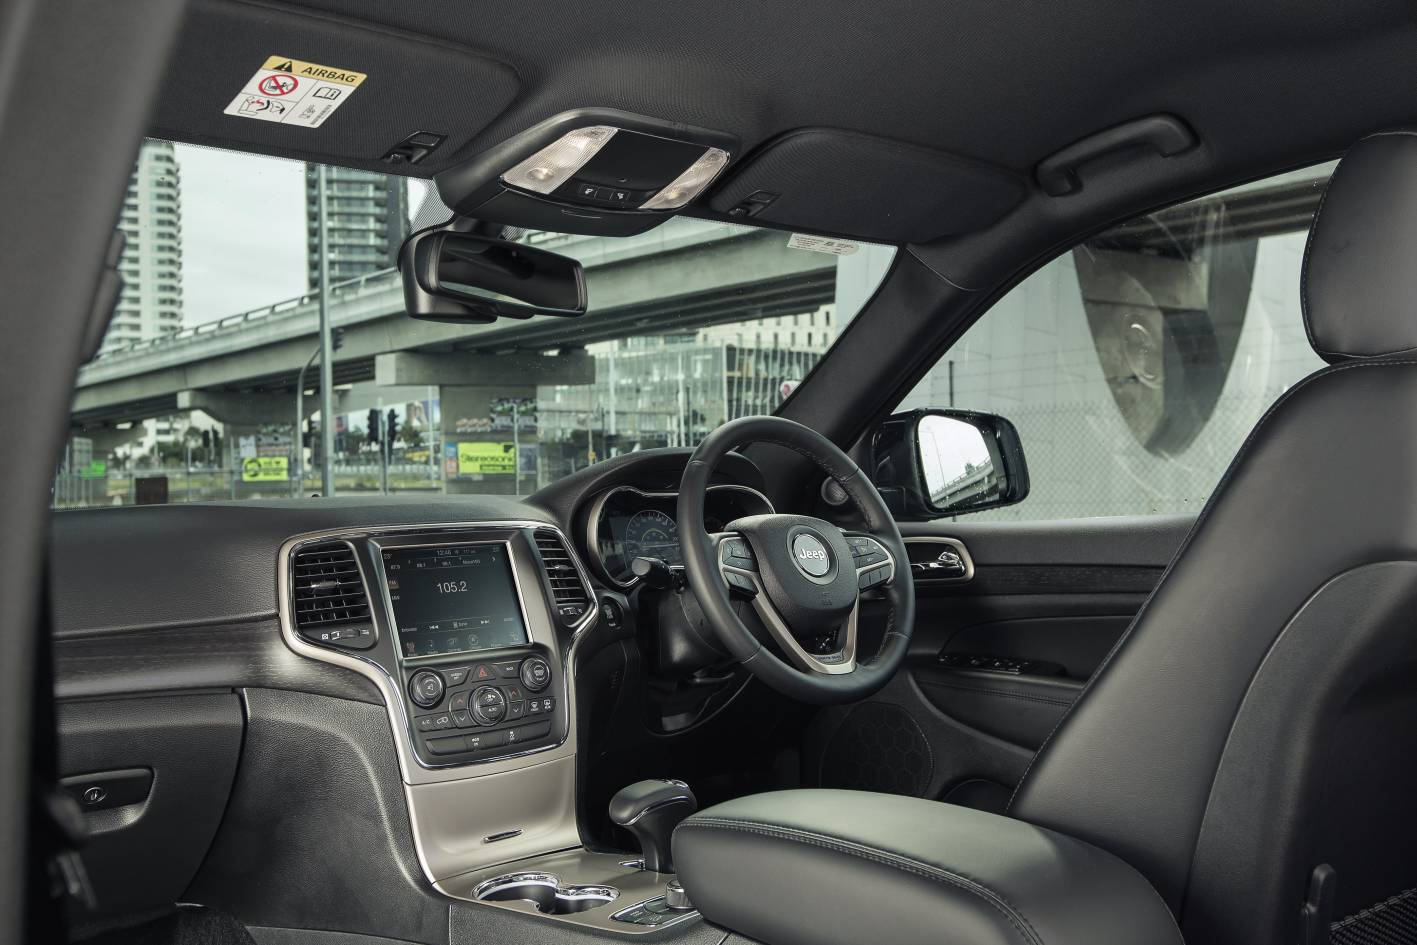 Jeep Blackhawk Edition 2015 Grand Cherokee Interior